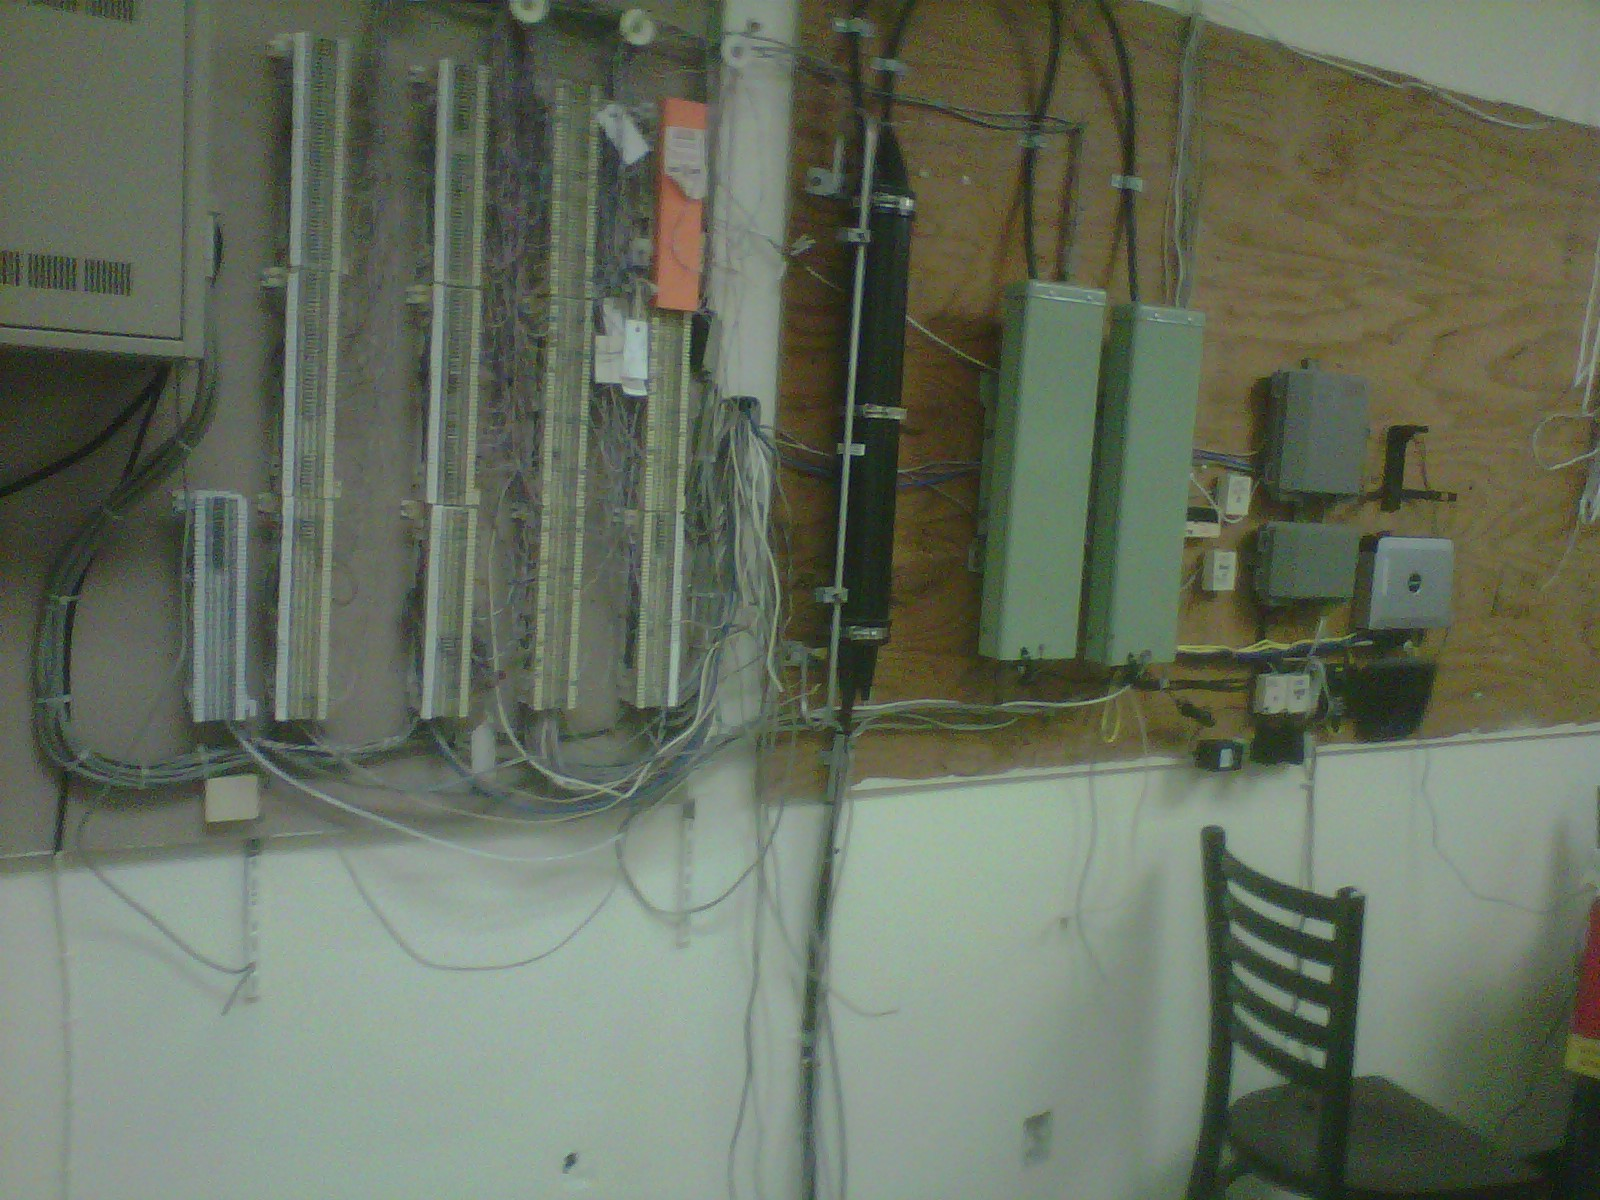 66 Block Wiring Diagram 25 Pair Shark Dissection Guide Nyphonejacks Installation Of Linksys E1000 Router And Spa